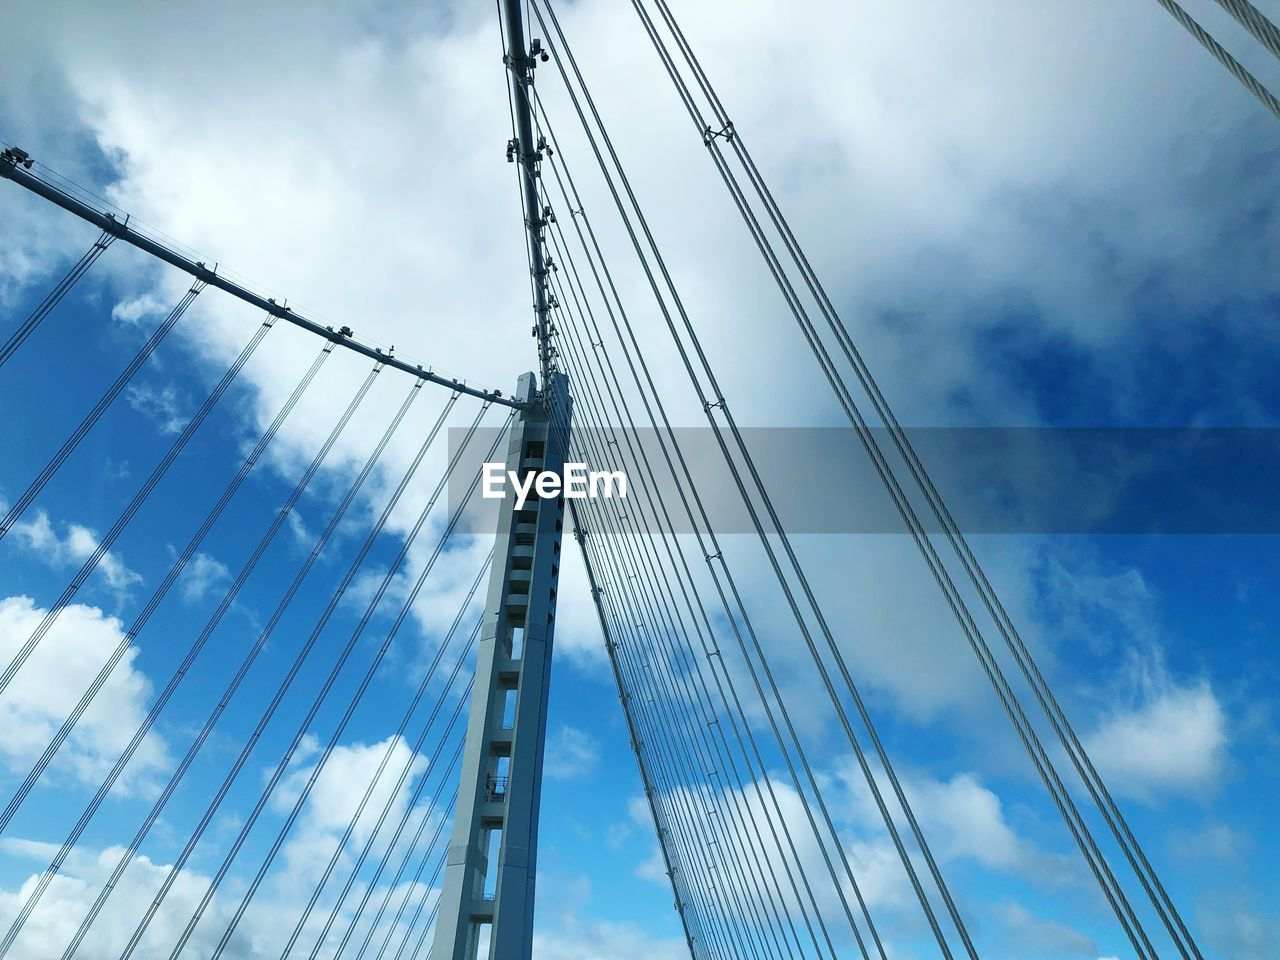 cloud - sky, low angle view, sky, cable, connection, bridge, engineering, built structure, suspension bridge, architecture, bridge - man made structure, cable-stayed bridge, transportation, day, nature, steel cable, modern, outdoors, blue, office building exterior, skyscraper, sailboat